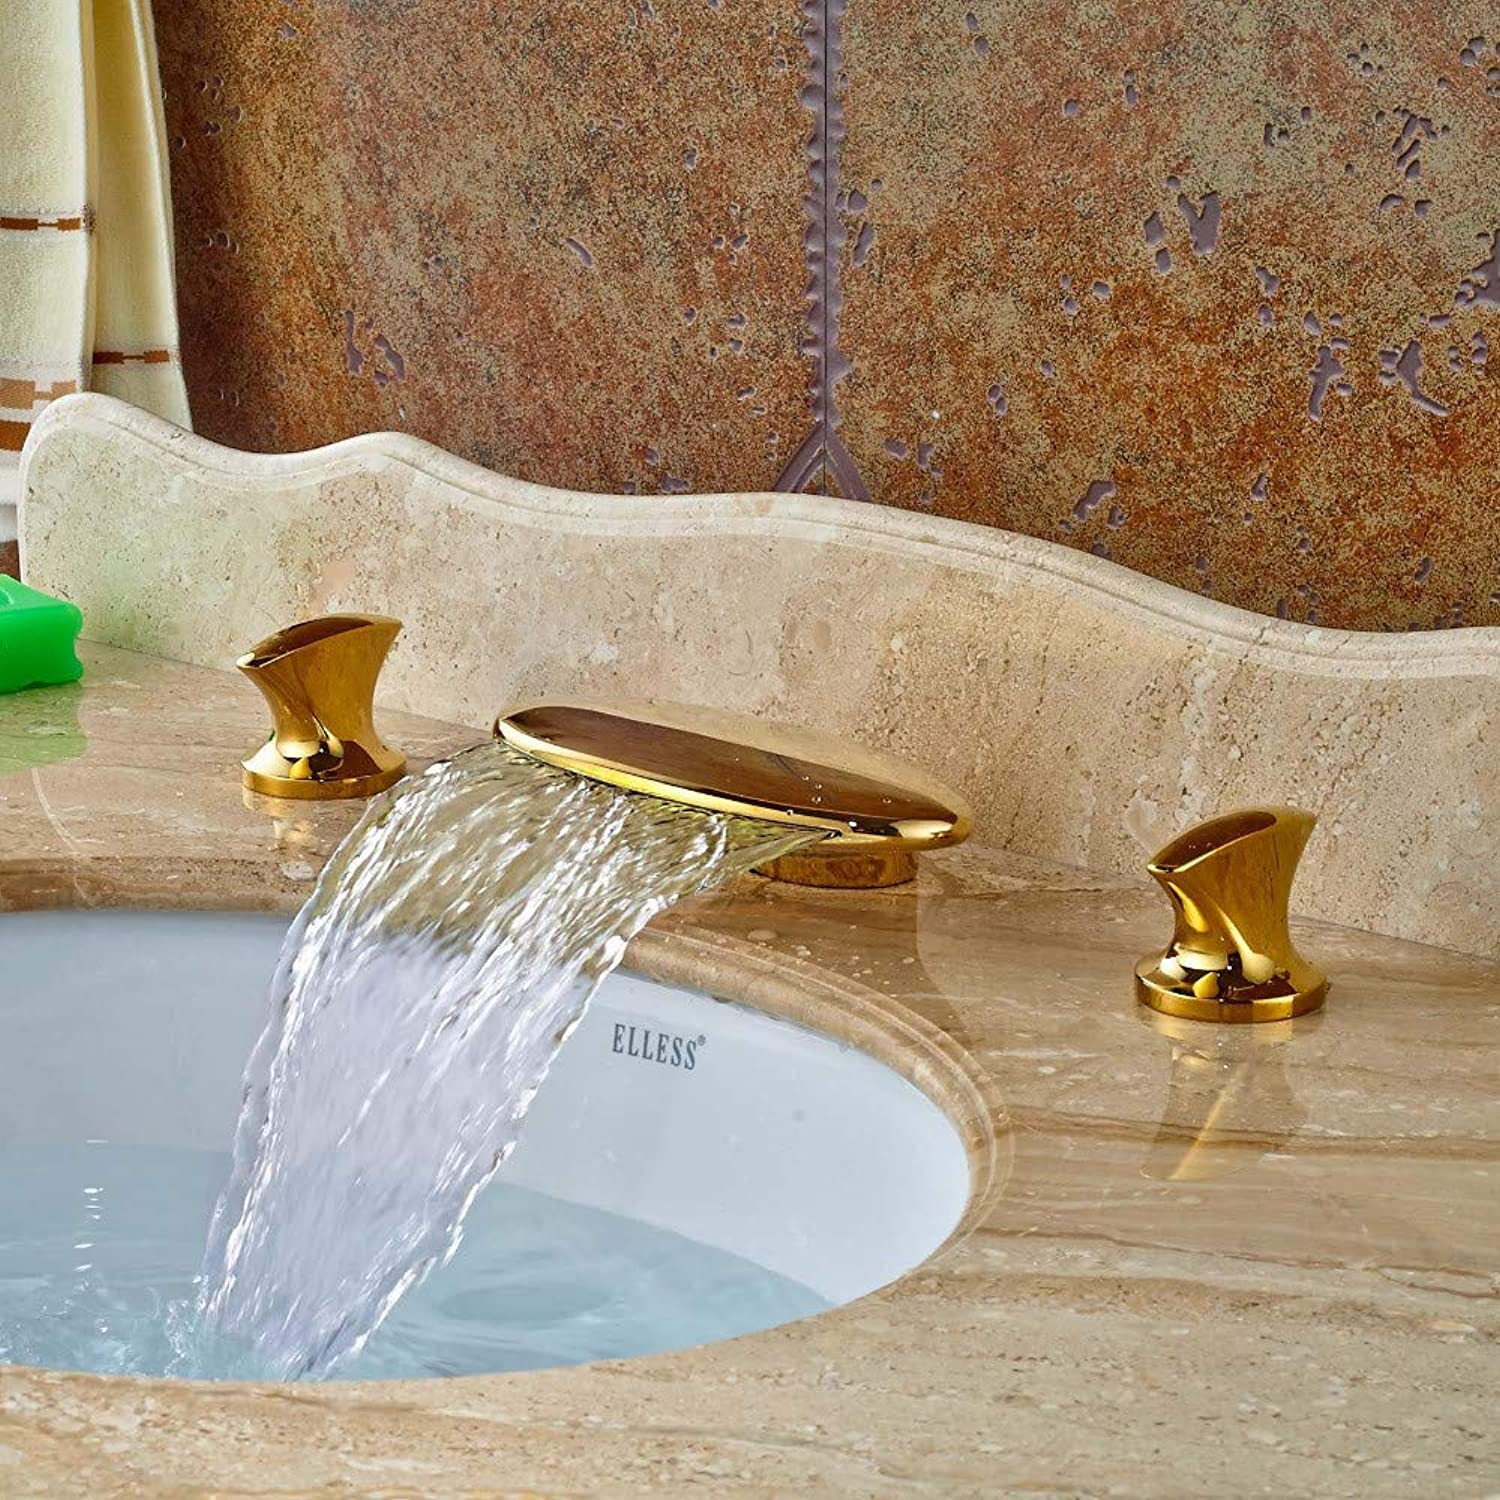 Floungey Kitchen Sink Taps Bathroom Sink Taps Led Light Widespread 8  Sink golden Brass Bathroom Basin Faucet Waterfall Spout Dual Handles Vanity Sink Mixer Tap